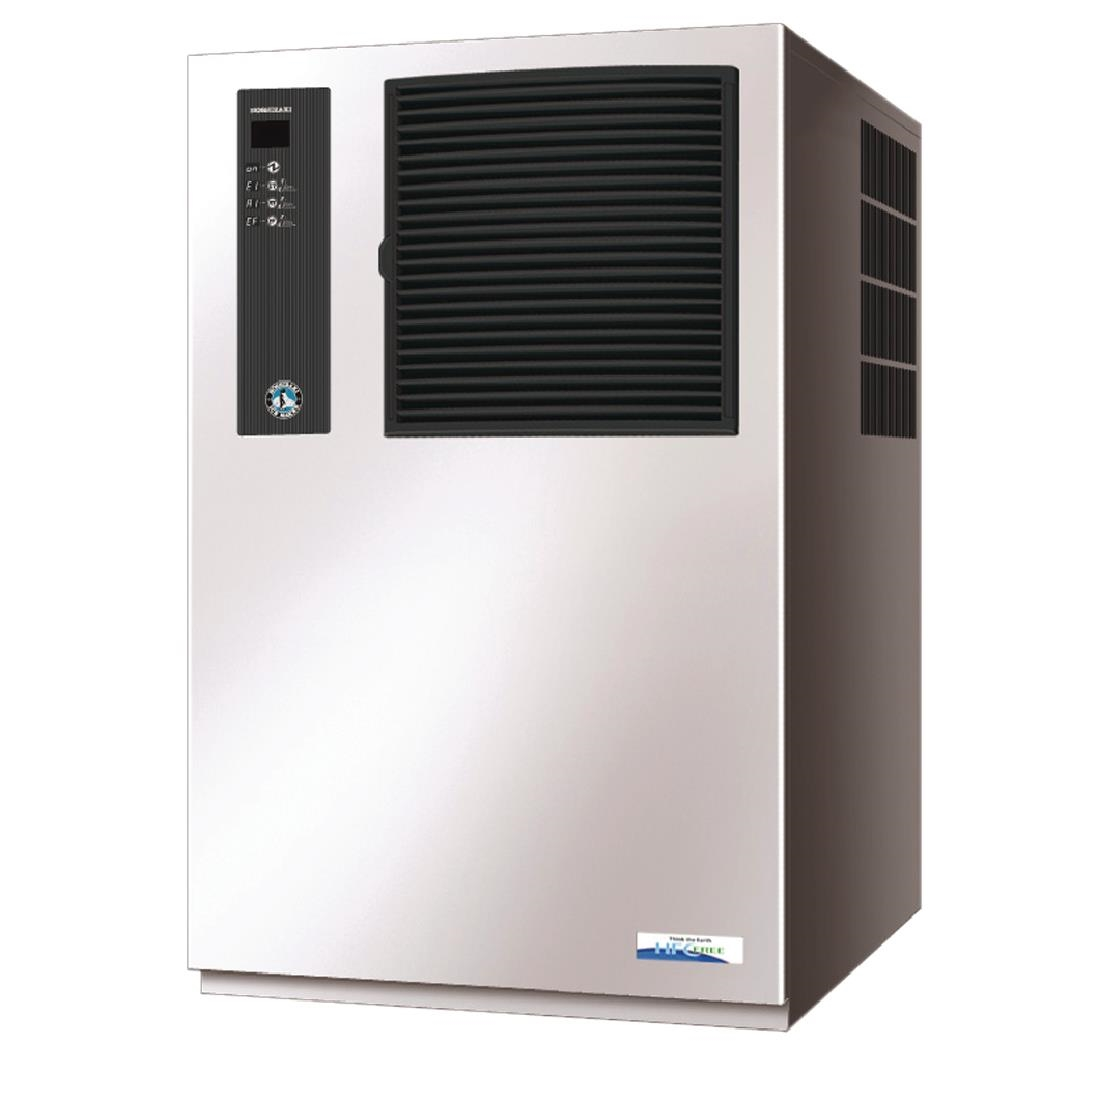 Hoshizaki Modular Air-Cooled HFC-Free Ice Maker IM-240-ANE-HC